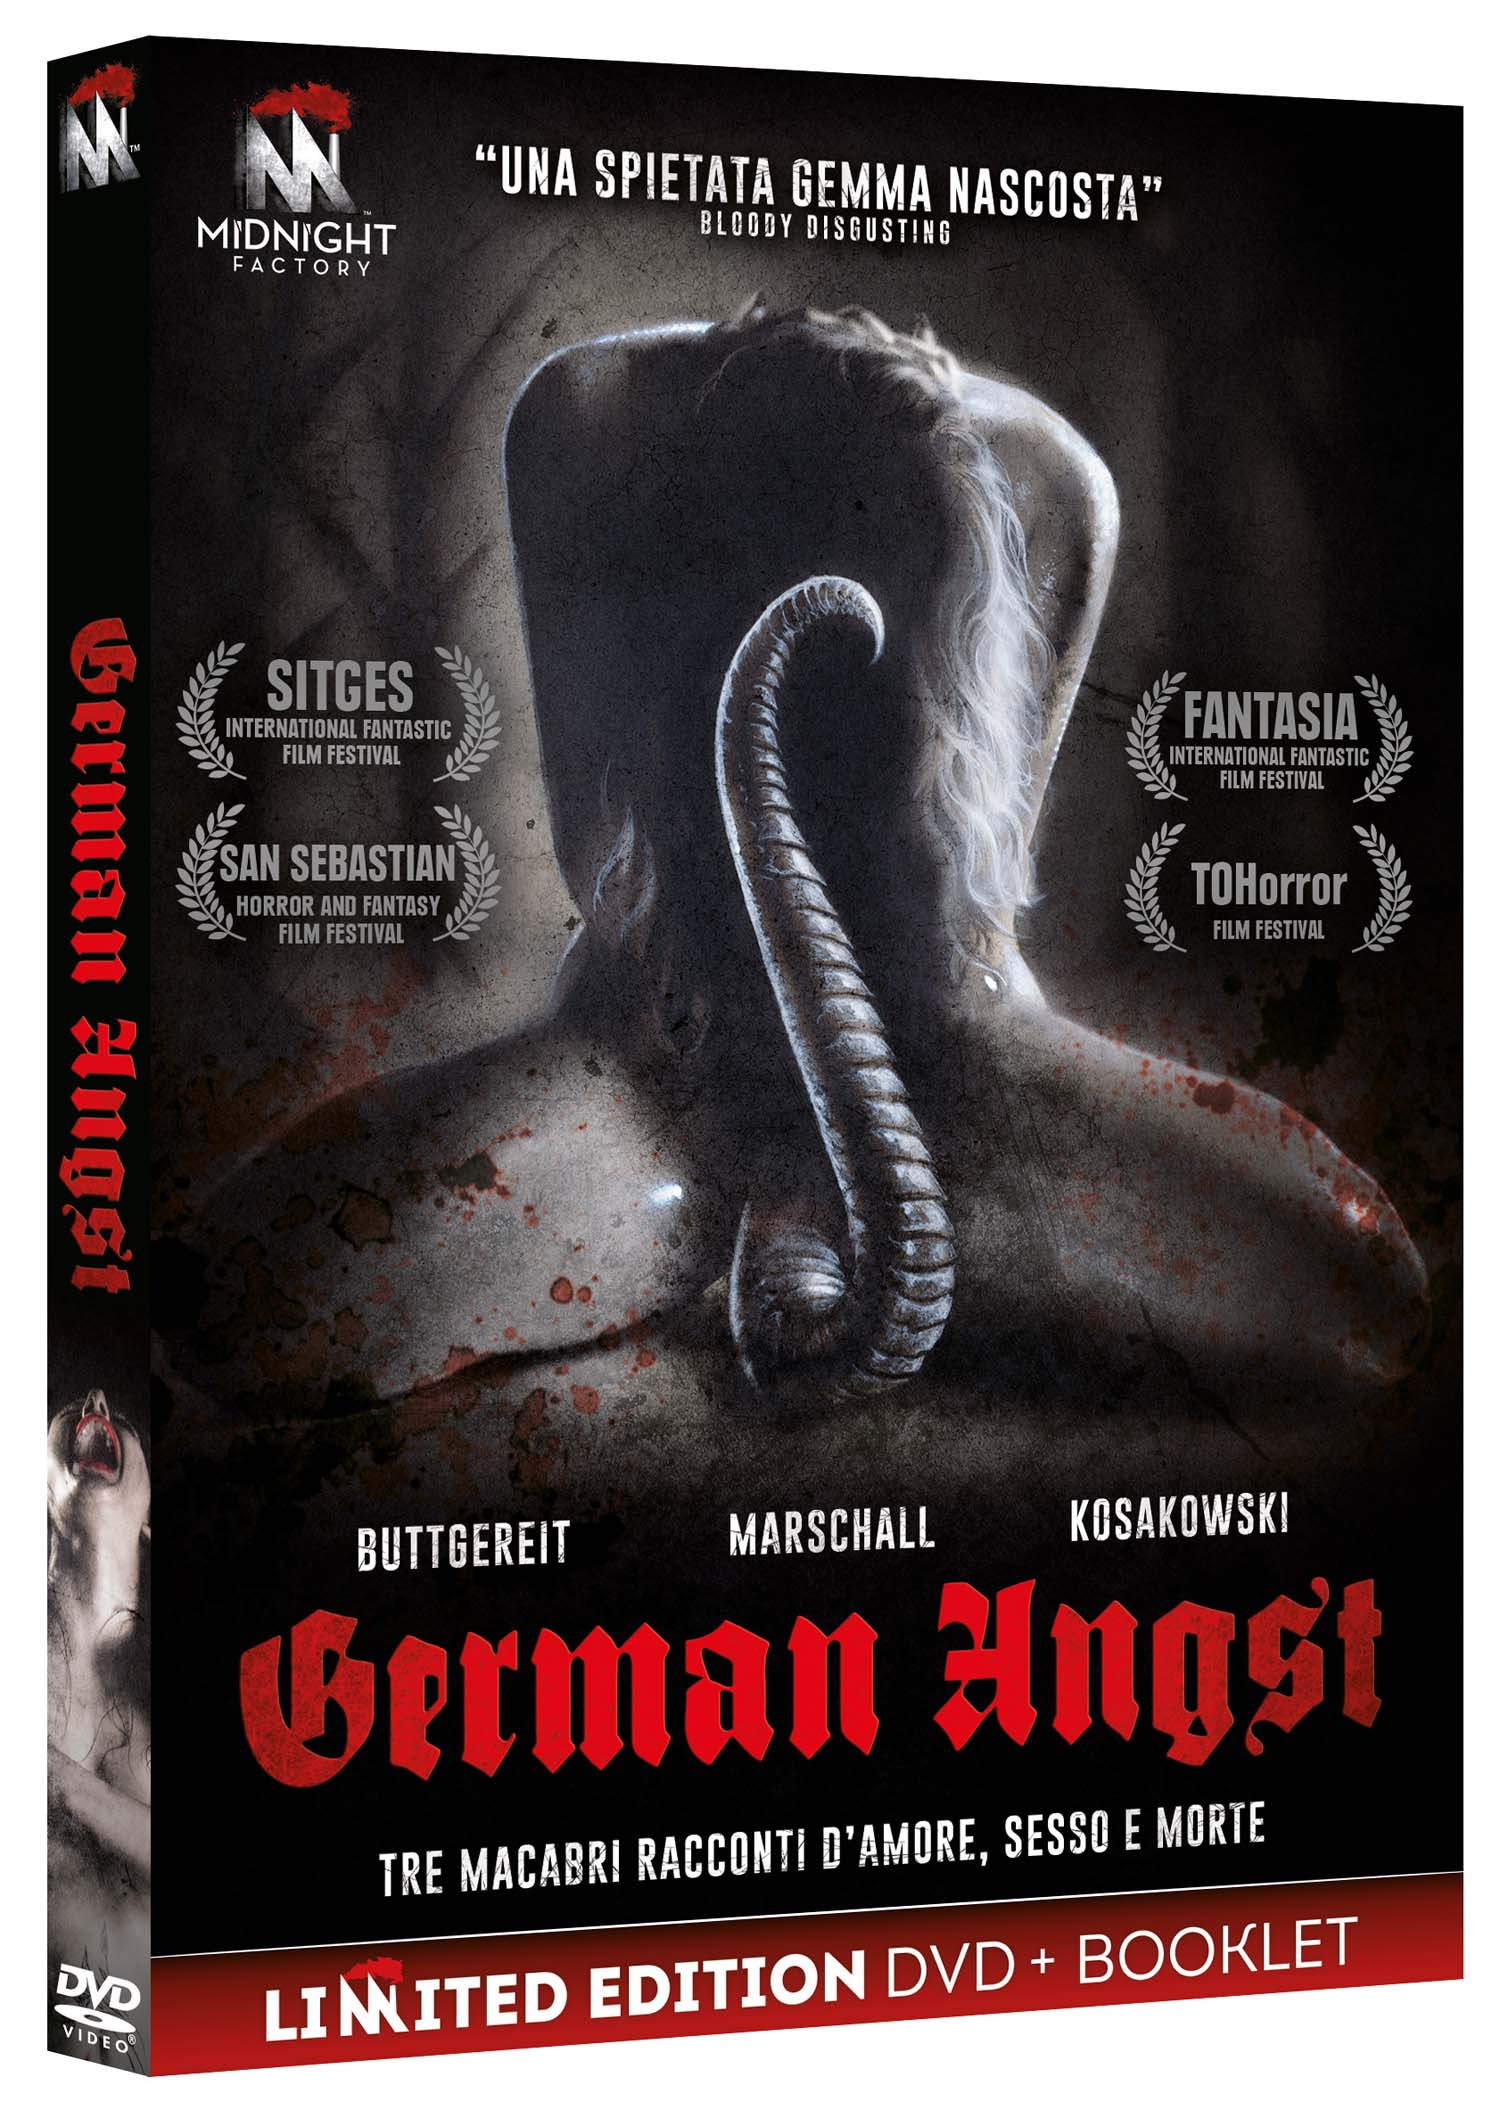 GERMAN ANGST (LTD) (DVD+BOOKLET) (DVD)